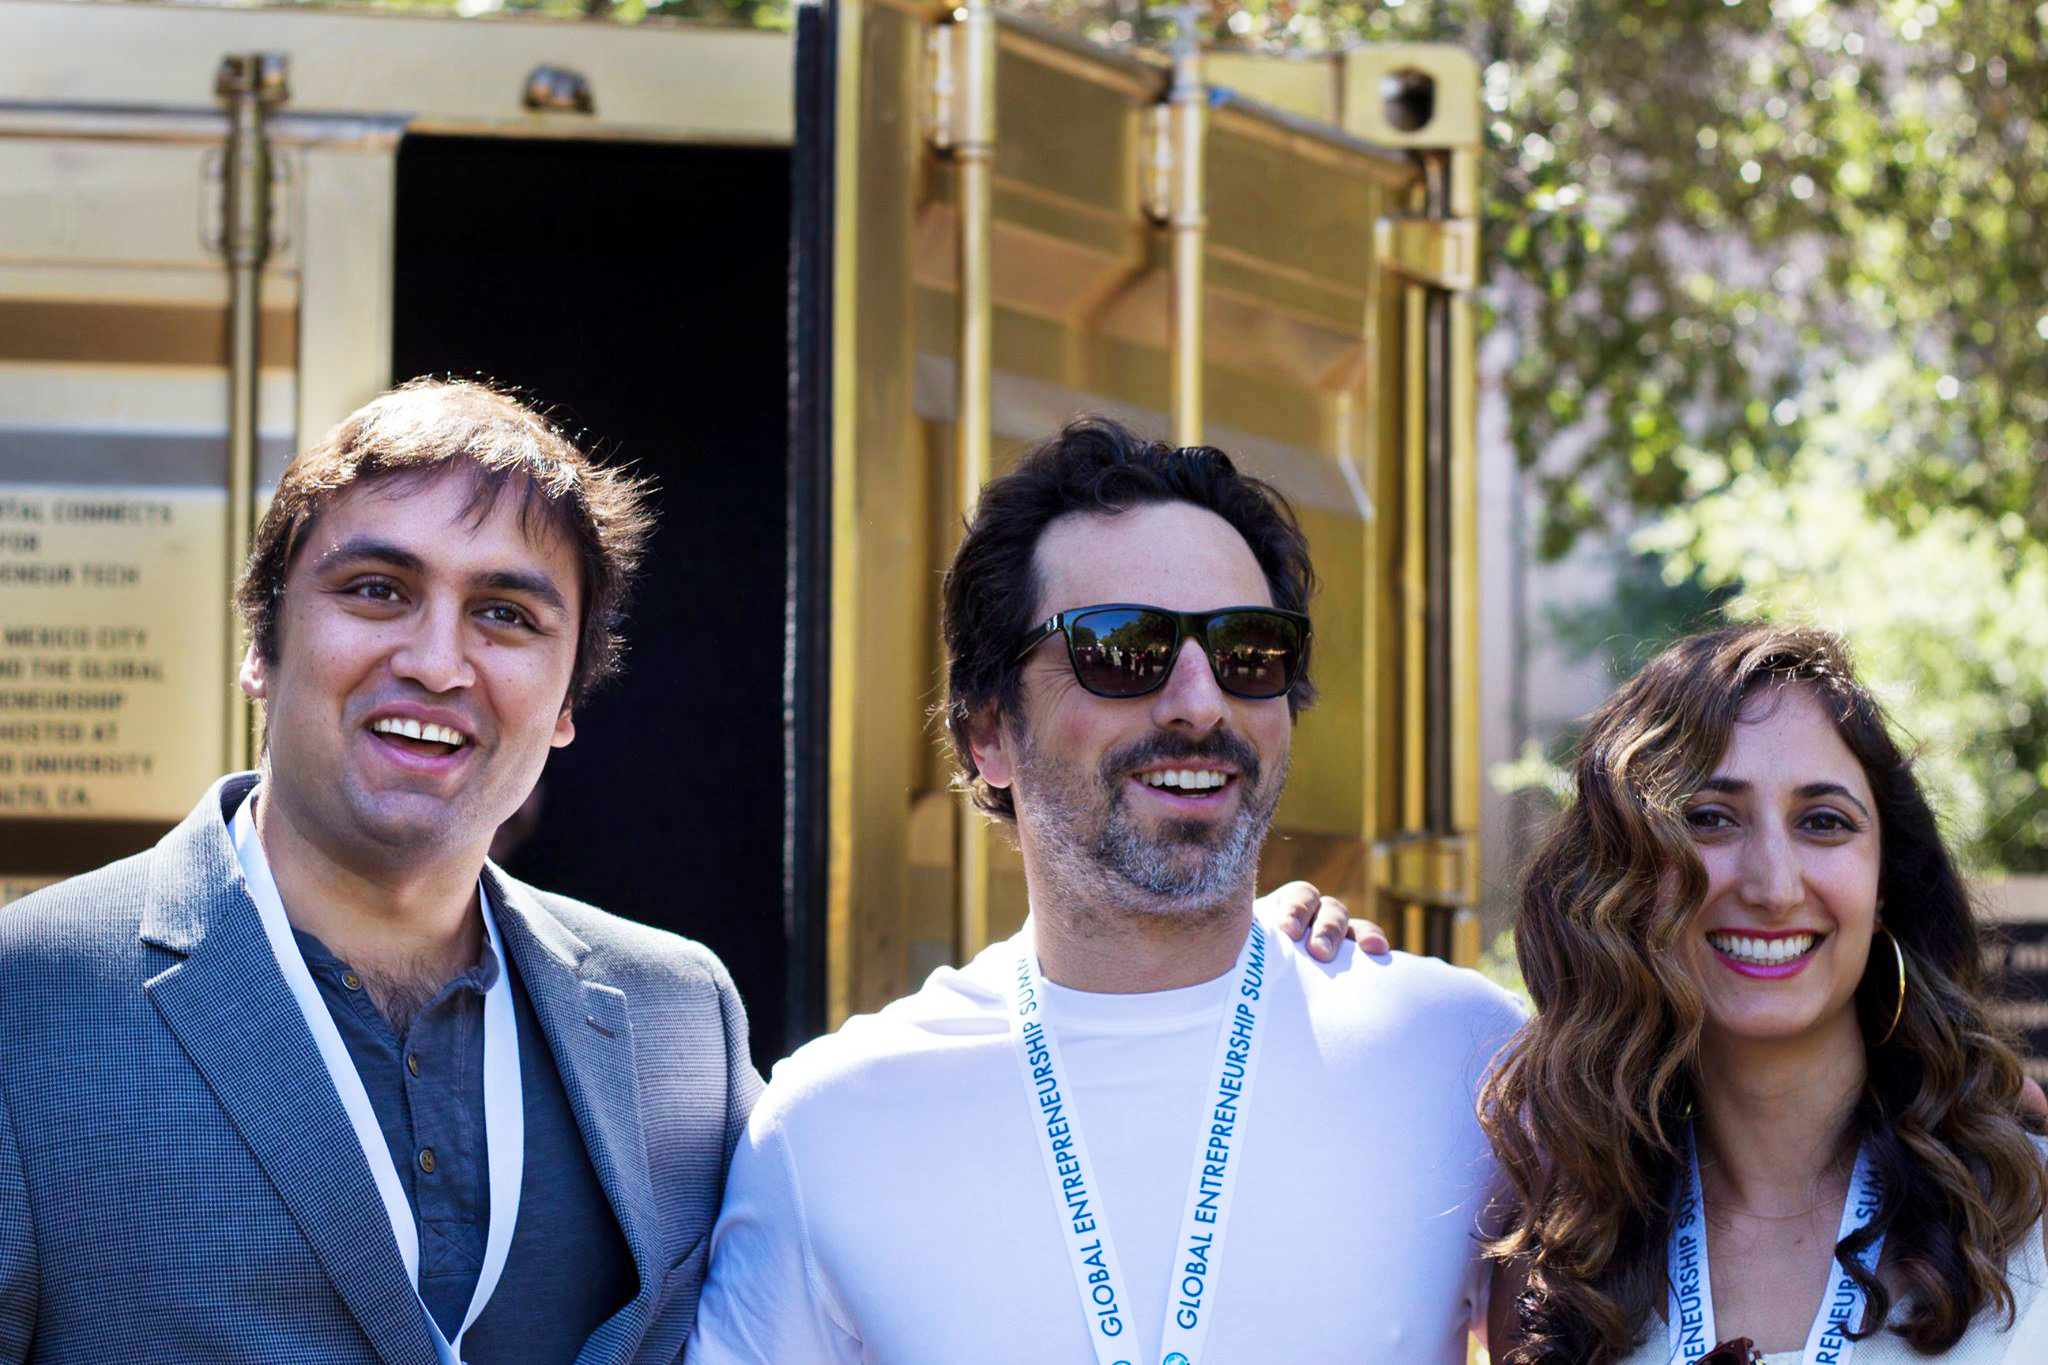 Google co-founder Sergey Brin with Shared_Studios Founder Amar C. Bakshi and Co-Founder Michelle Moghtader